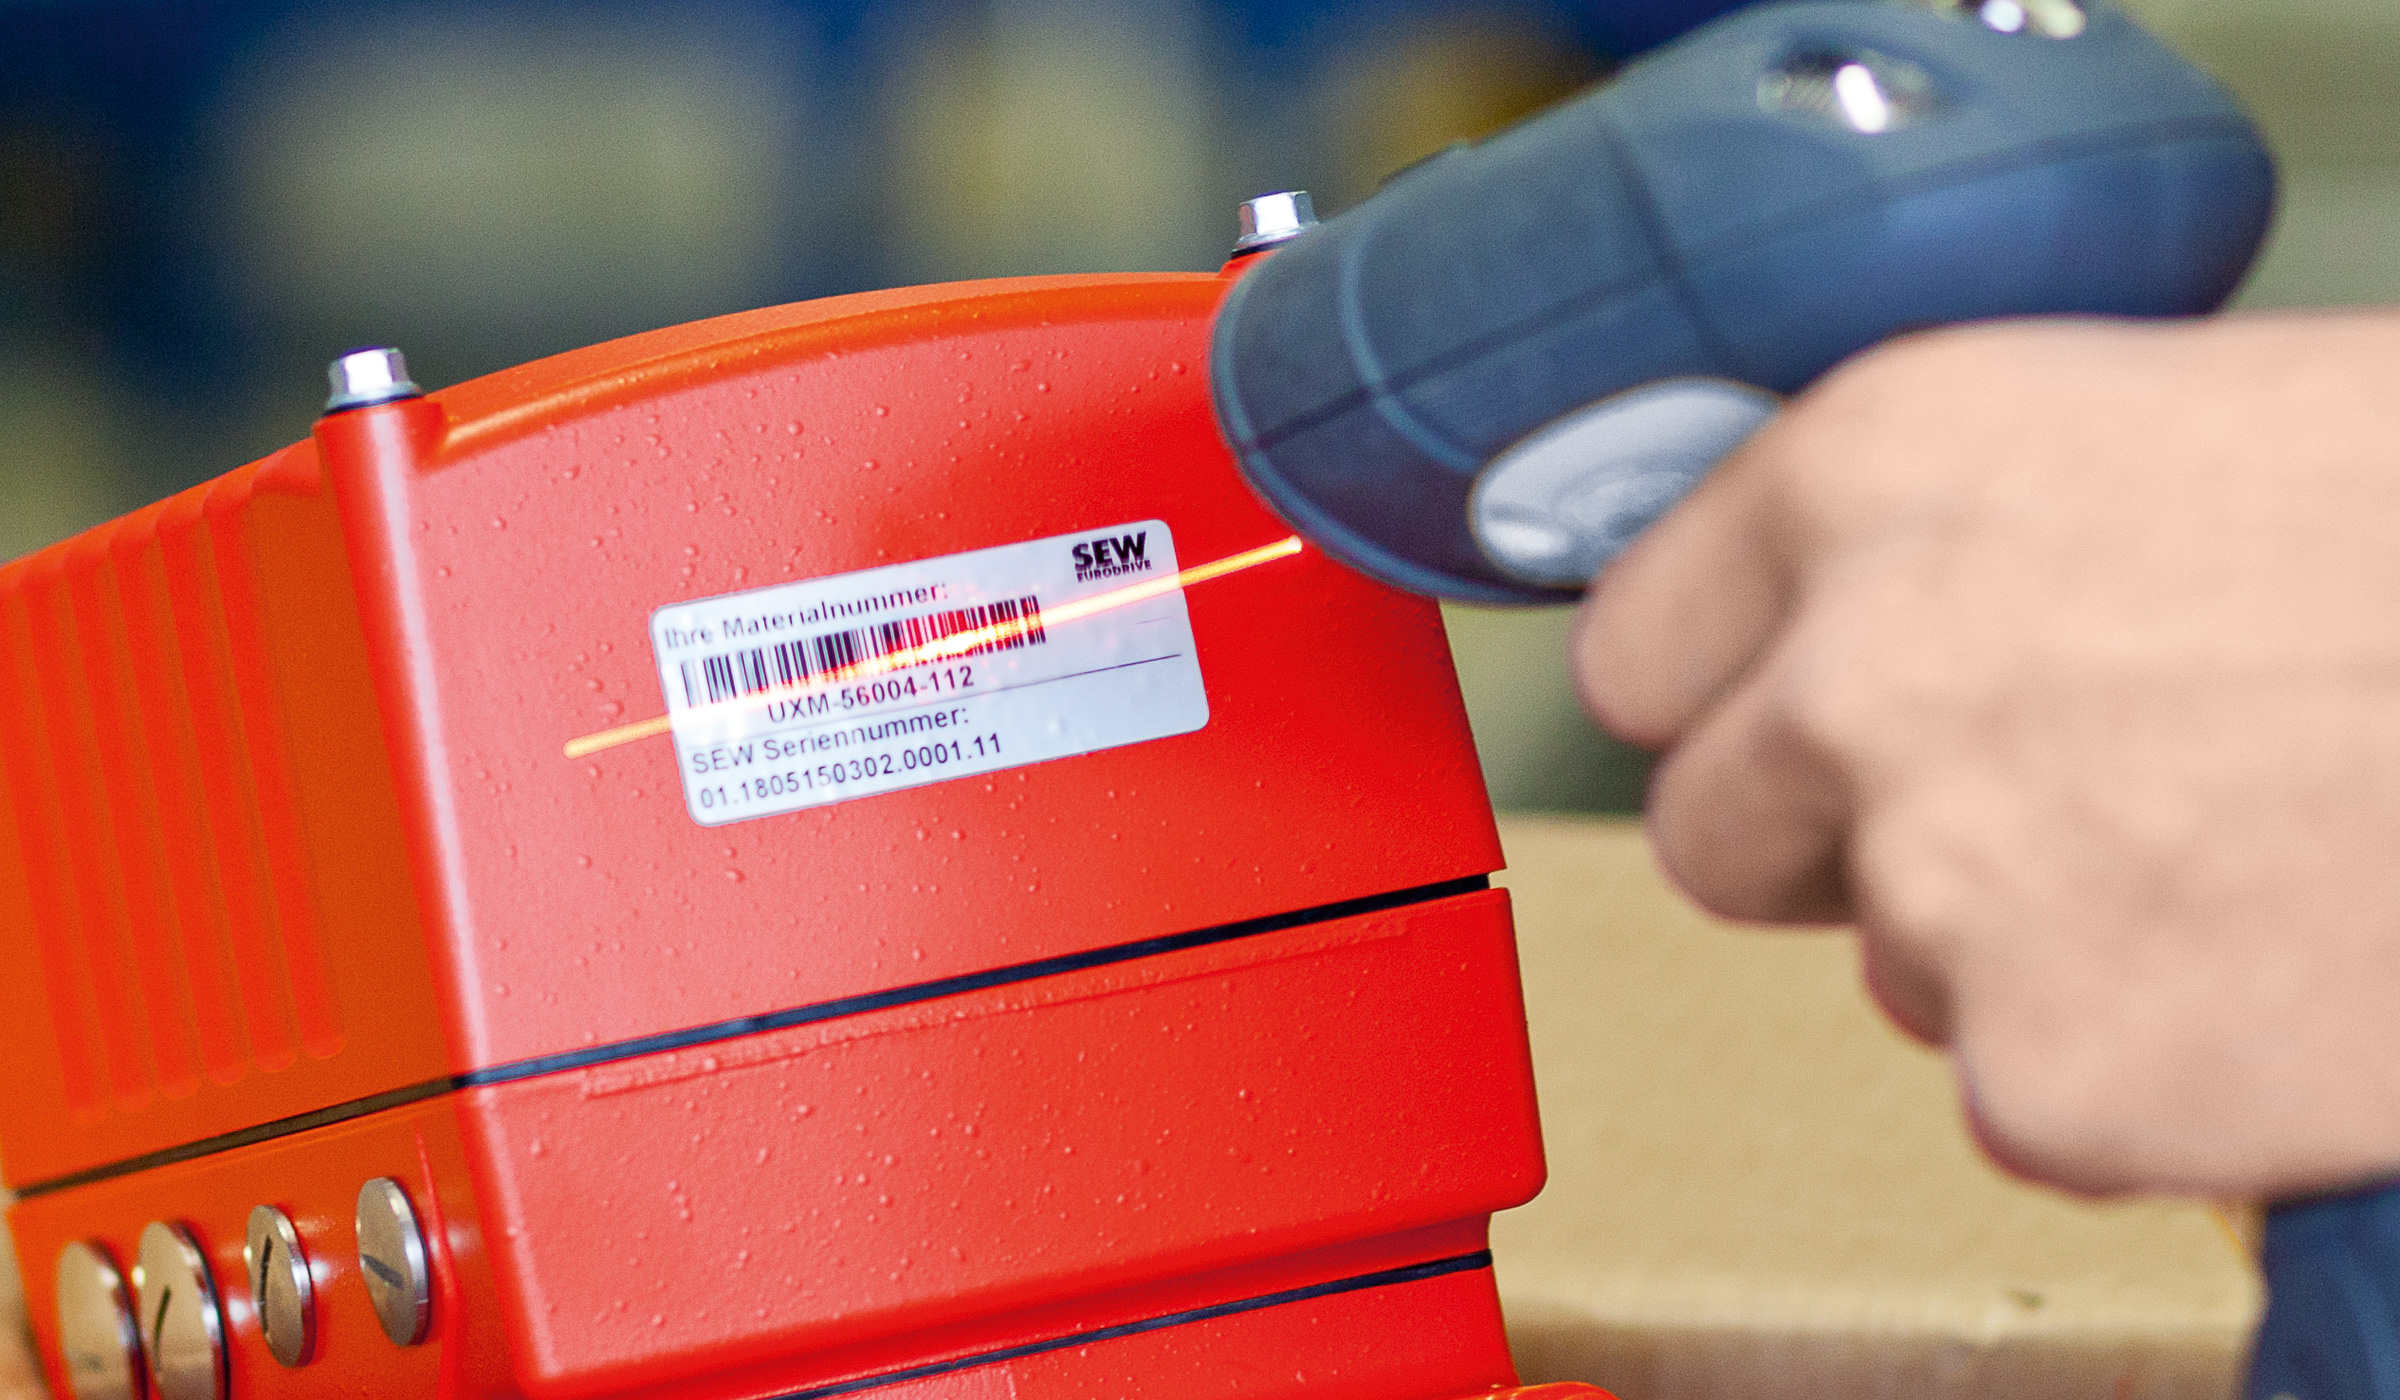 Scanning barcode labels on the product